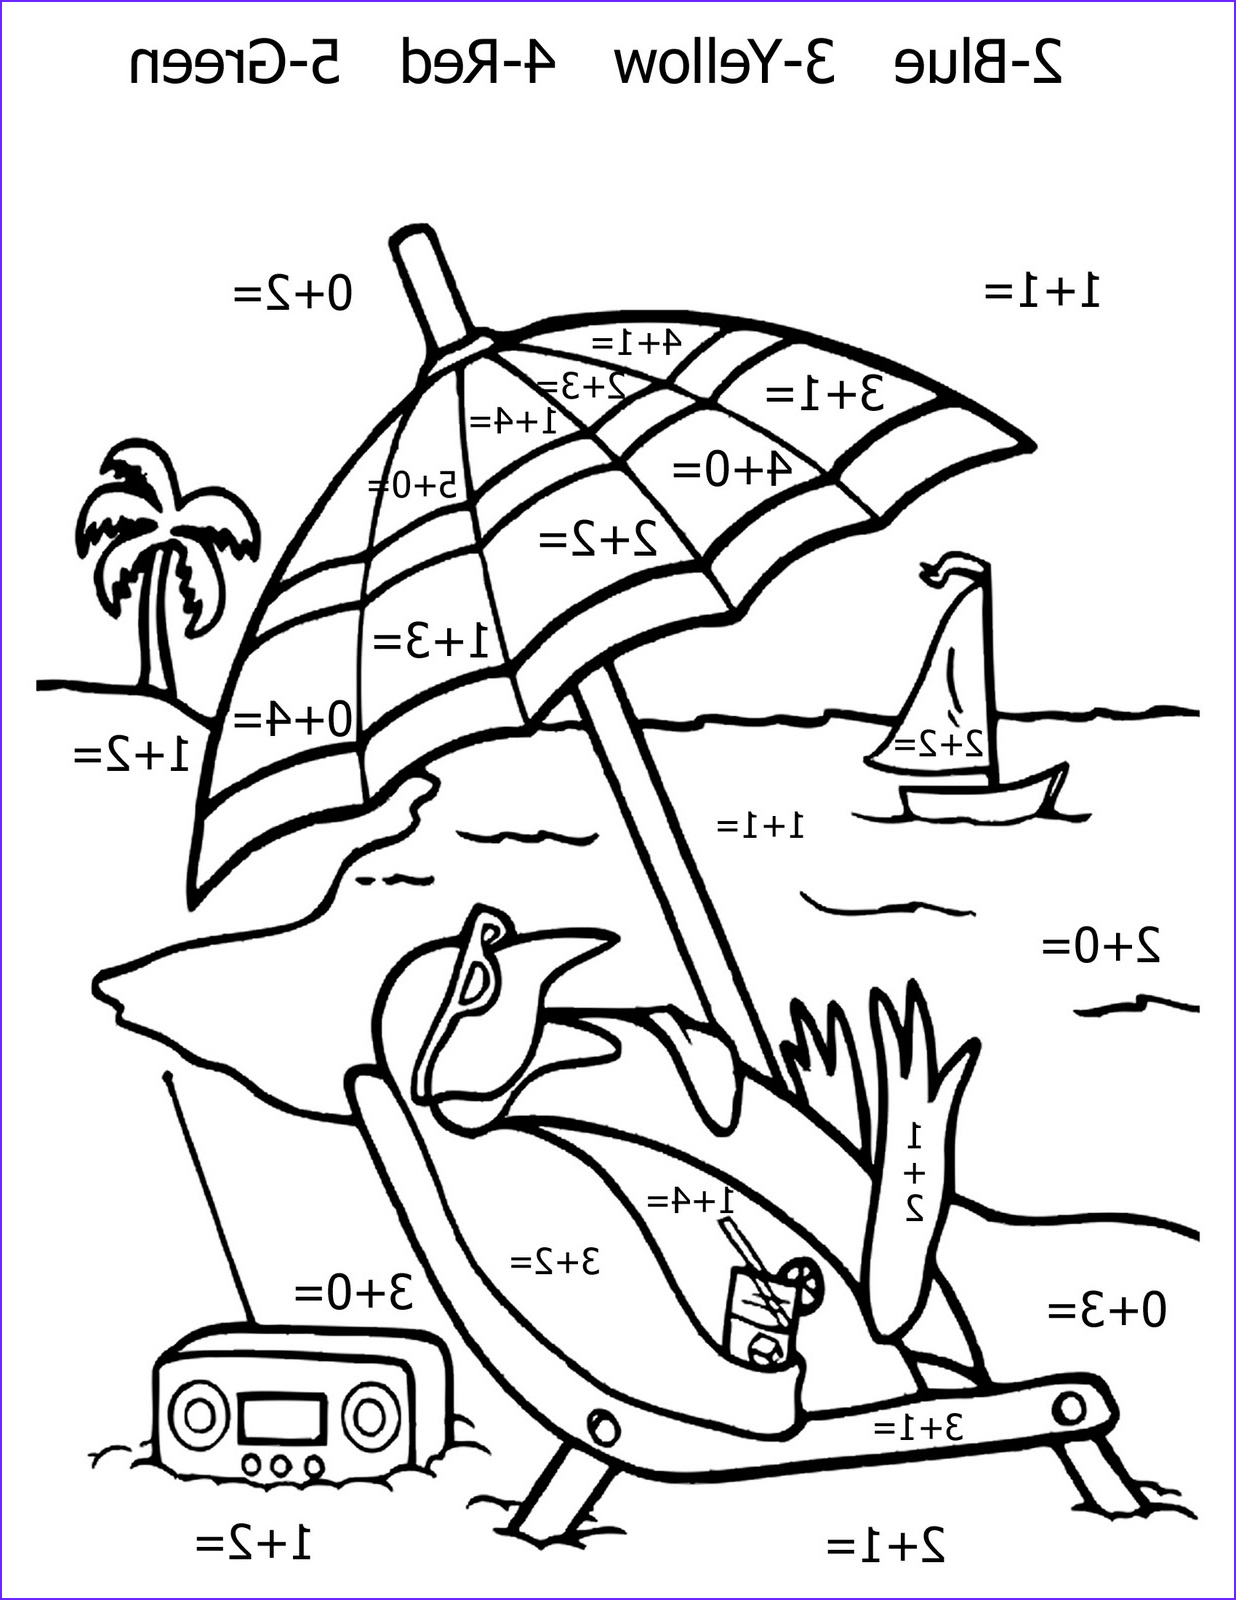 Free Math Coloring Page Luxury Gallery Free Printable Math Coloring Pages for Kids Best